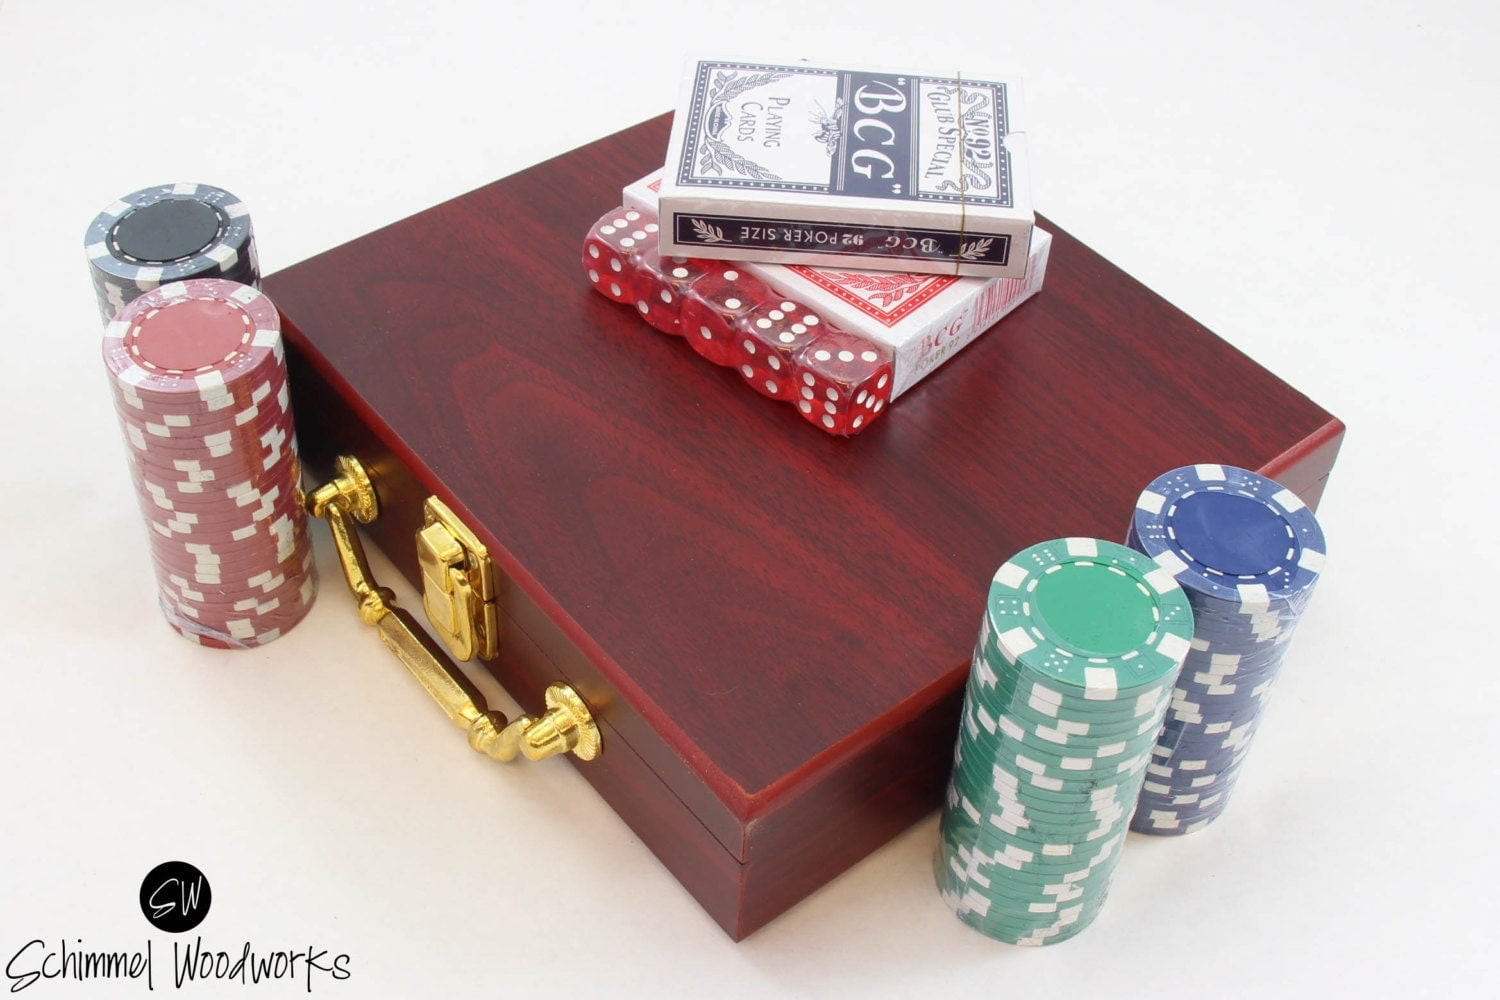 Personalized Engraved Poker Set Cards And Dice Included